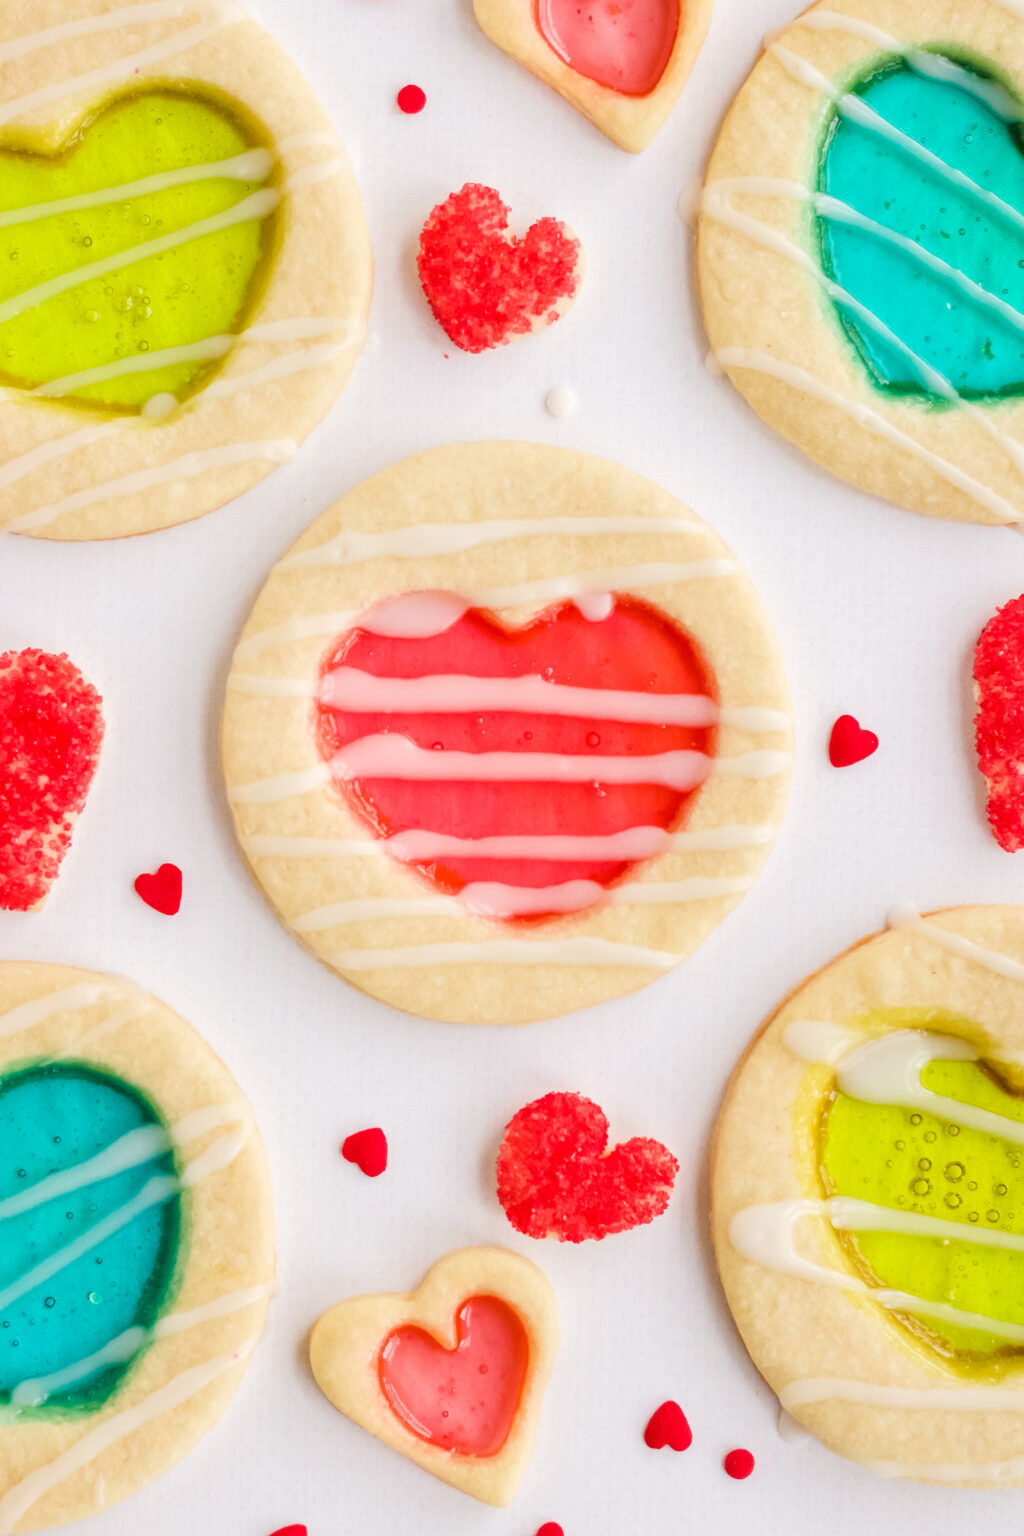 stained glass cookies on a white table